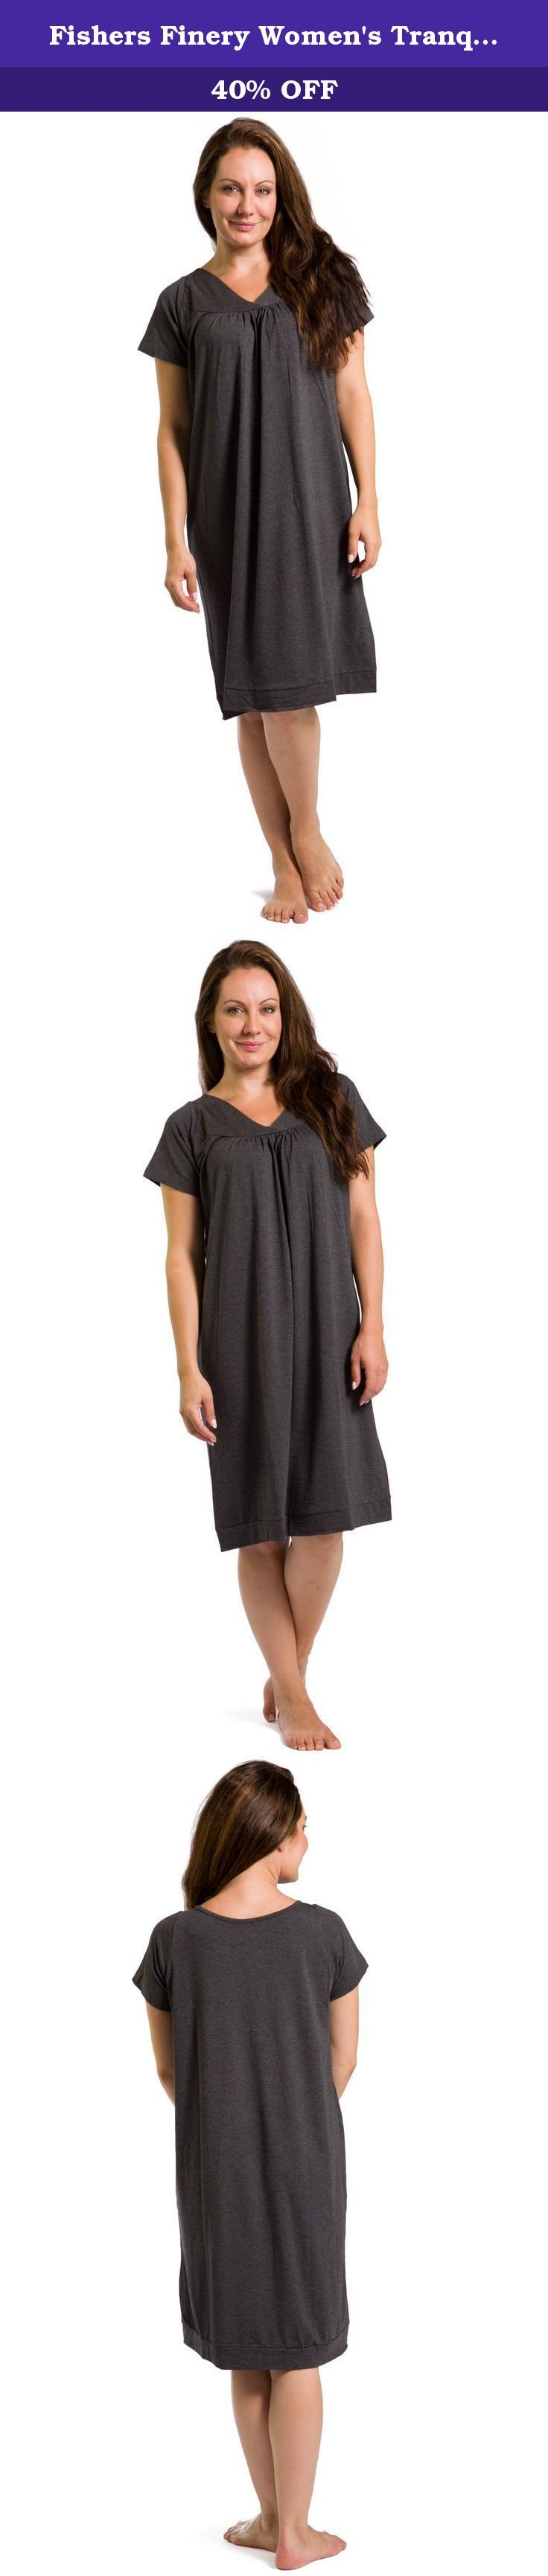 Fishers Finery Women's Tranquil Dreams Short Sleeve Nightgown Comfort Fit, Heather Gray, XX-Large. Our nightshirts are long enough to be comfortable but short enough to not be cumbersome. This short sleeve chemise is loose and extremely comfortable. Our nightwear can be both warm and cool with its wicking capacity and soft fabric hug that is not restricting. It is a great alternative to pajamas or shorty gowns of not so natural materials.